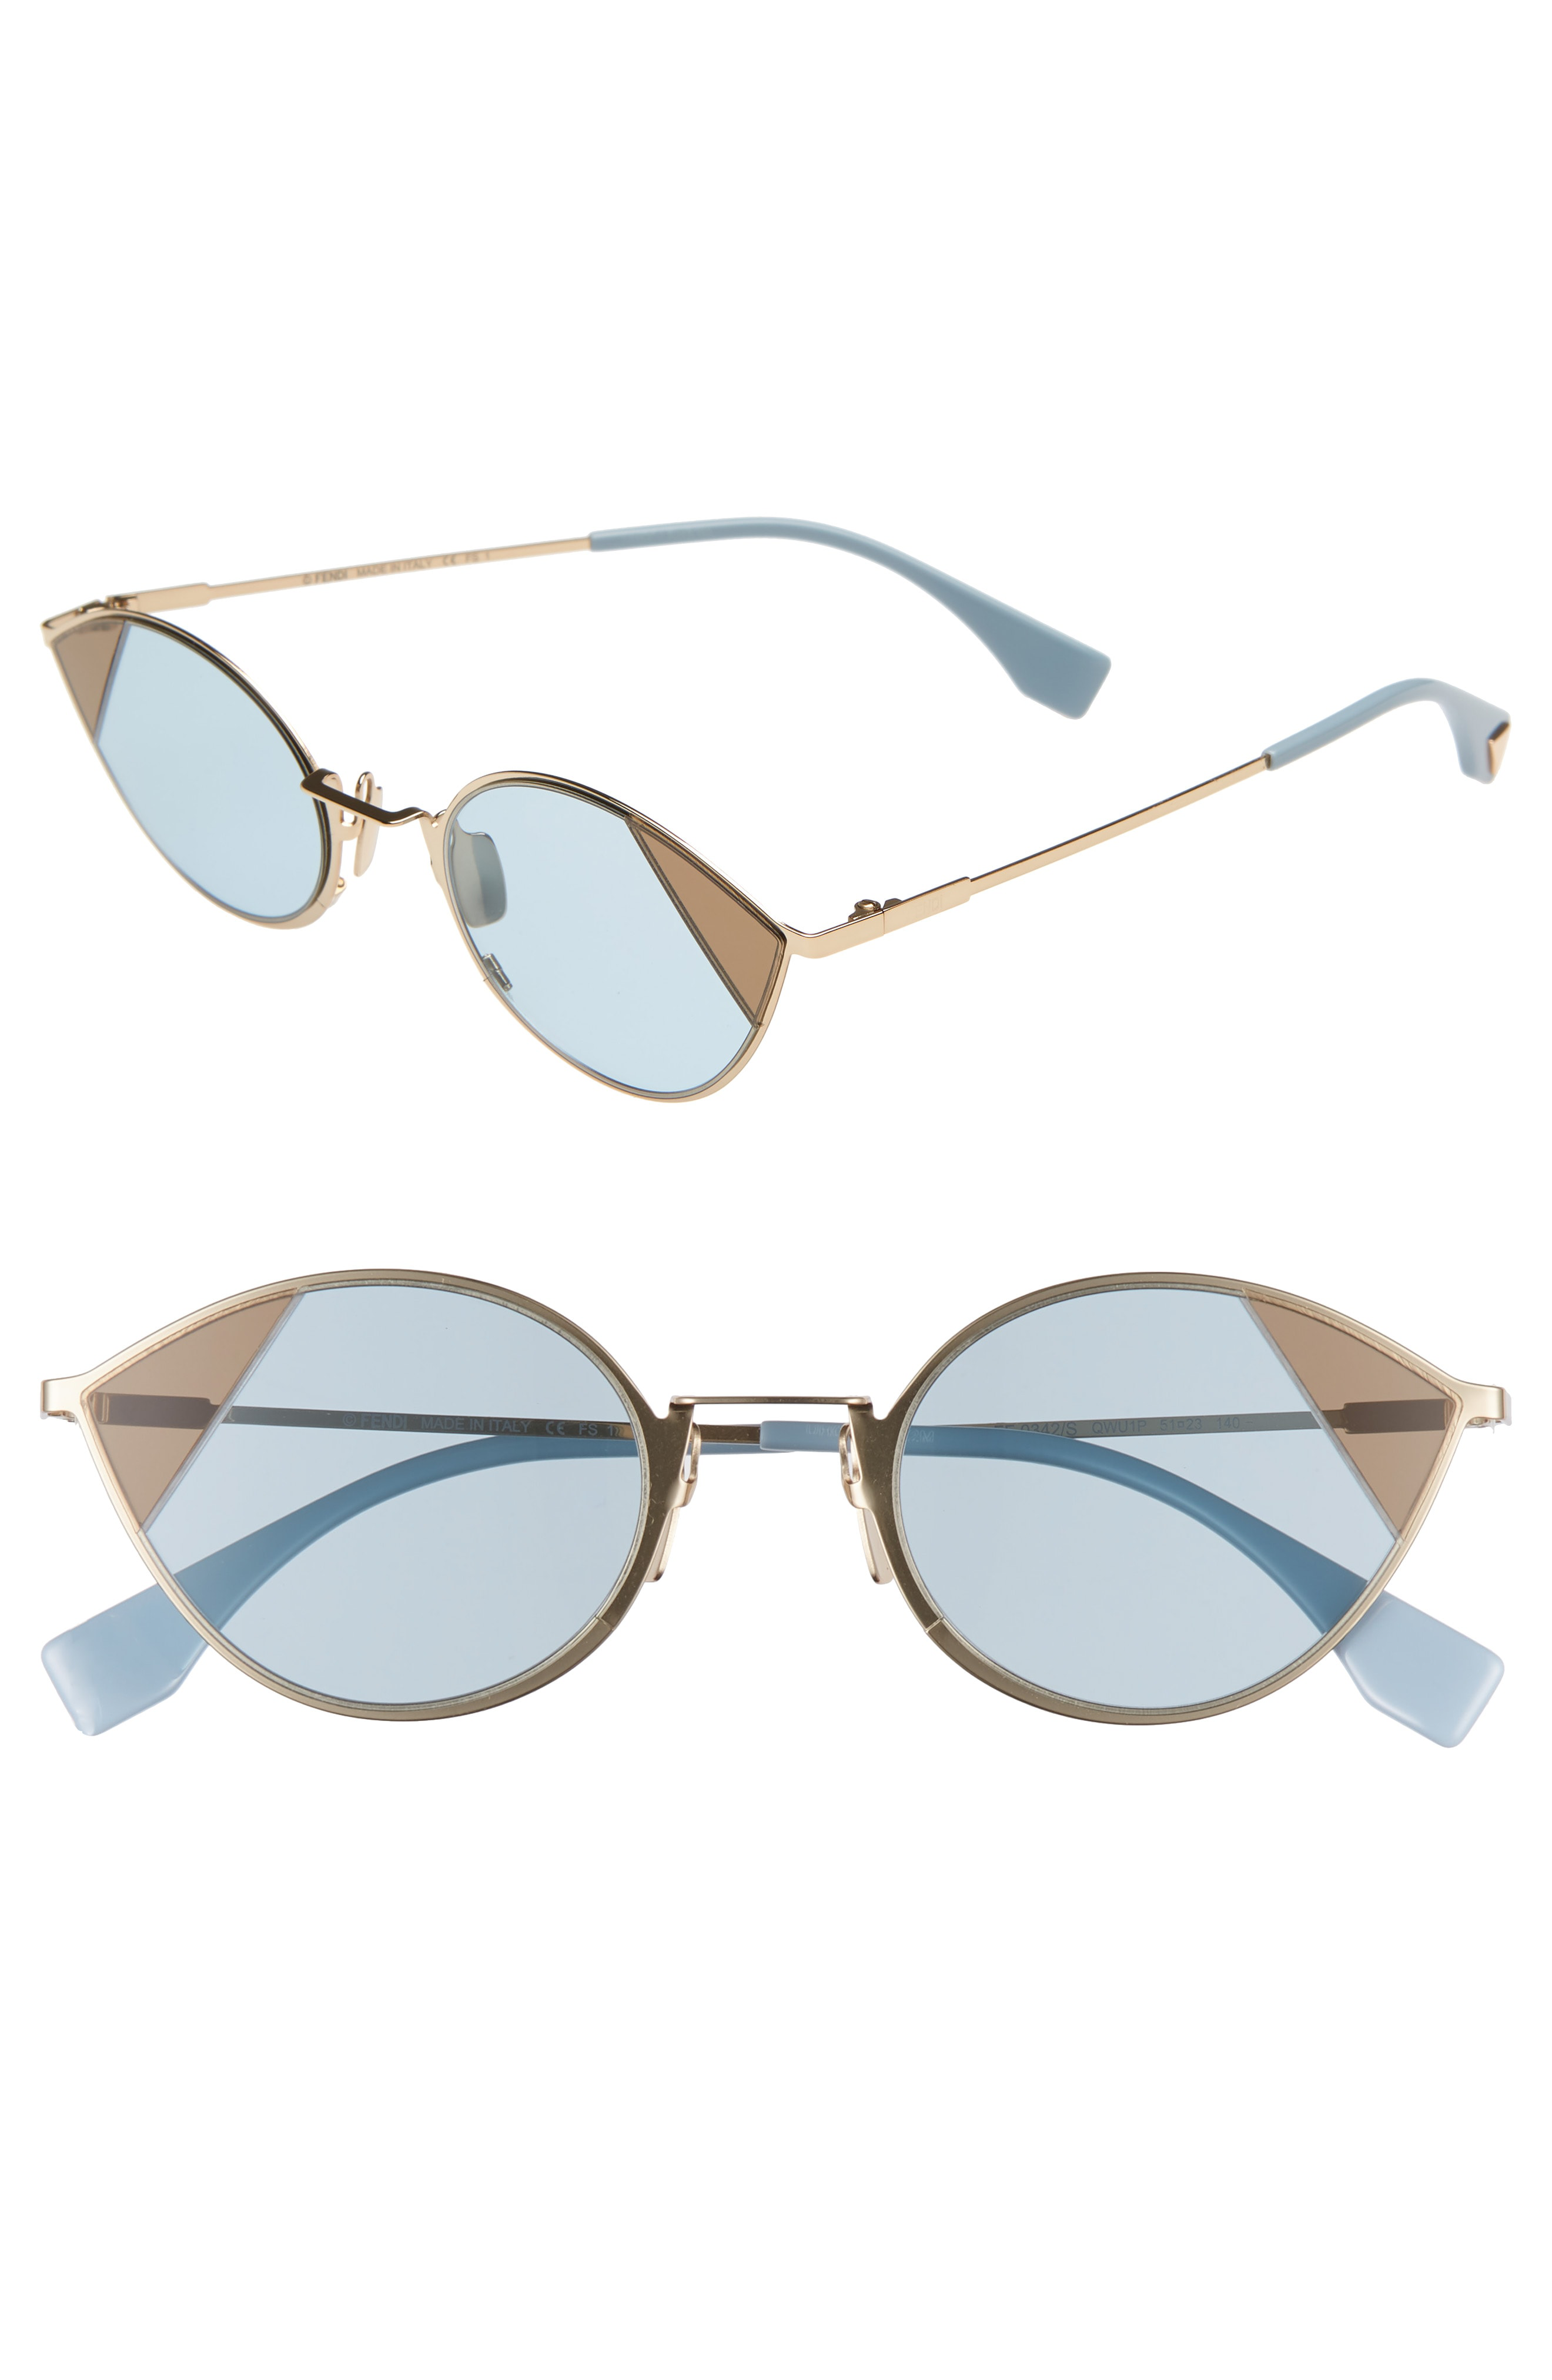 d8dba705e984 Fendi Narrow Cat Eye Color Block Sunglasses In Gold Azure